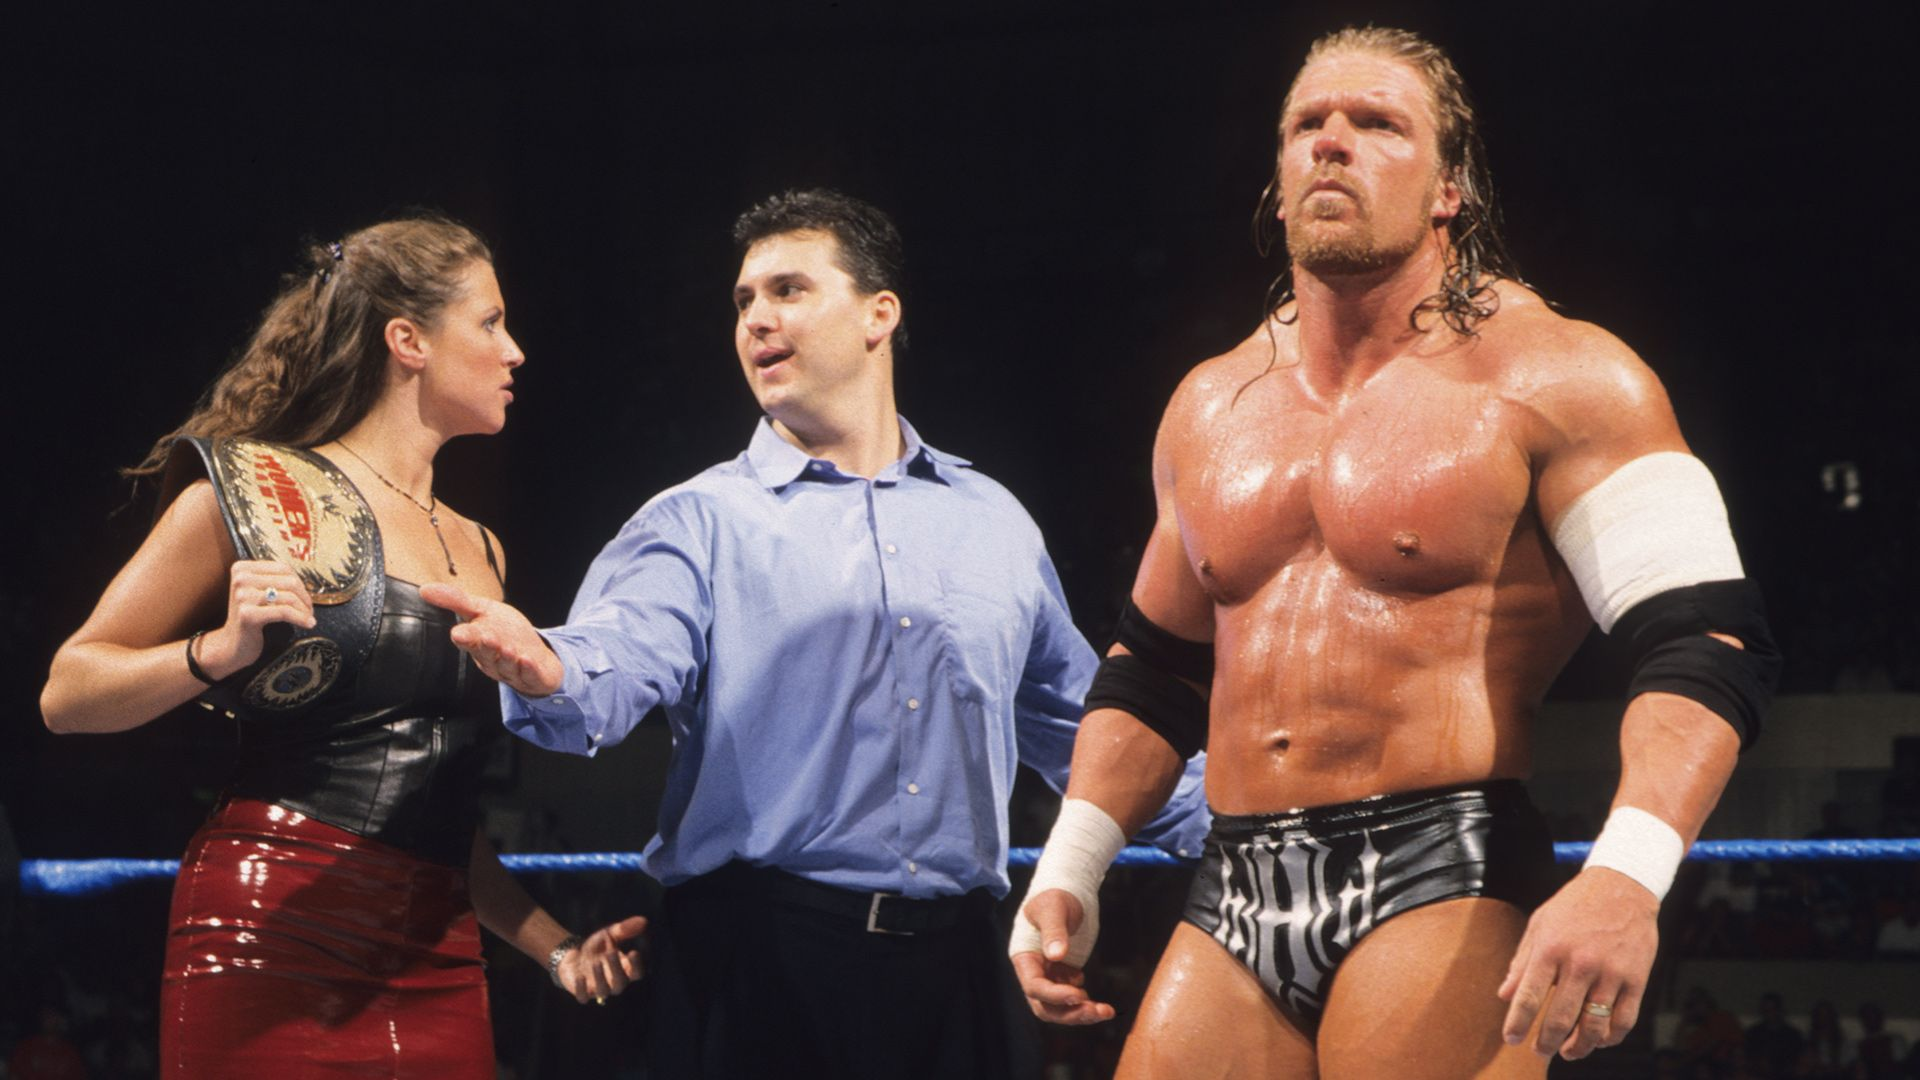 Hhh stephanie mcmahon kids Name: Kennedy Adam Levesque Pictures of triple h and stephanie mcmahon kids